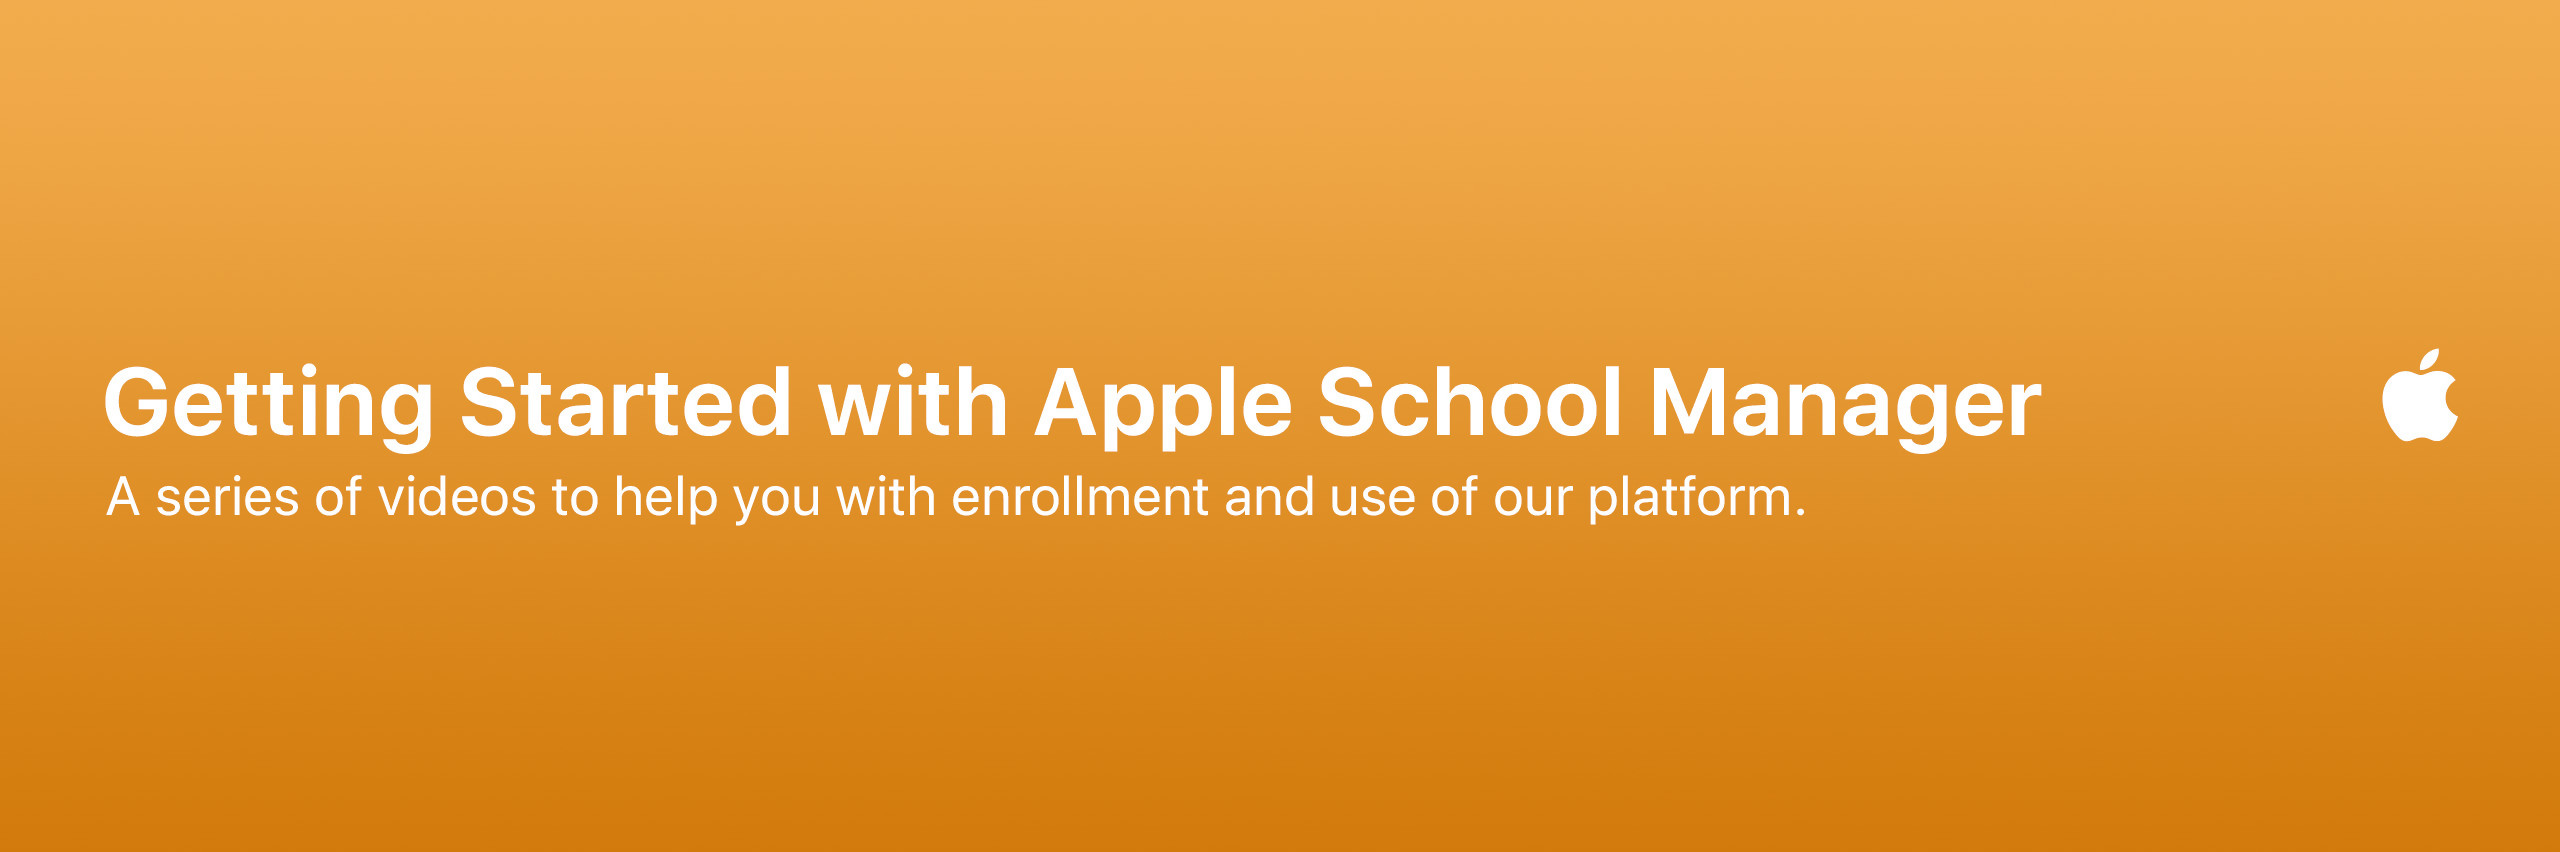 Getting Started with Apple School Manager